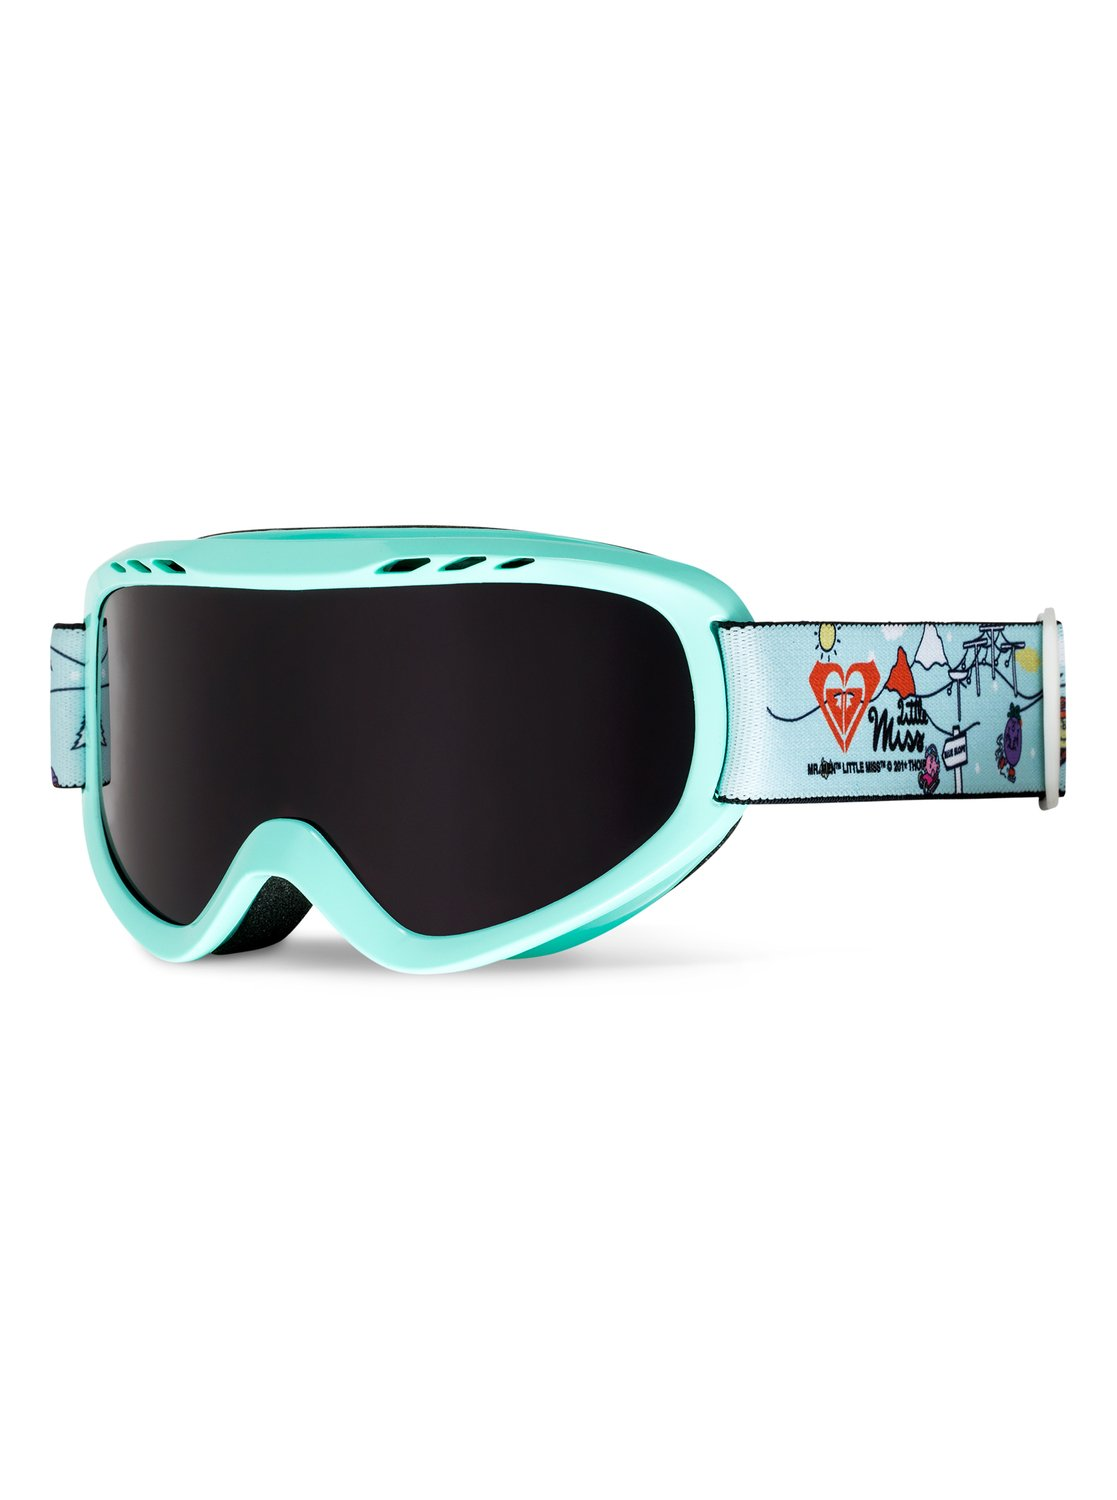 Sweet Little Miss - Masque de snowboard/ski pour Fille - Roxy